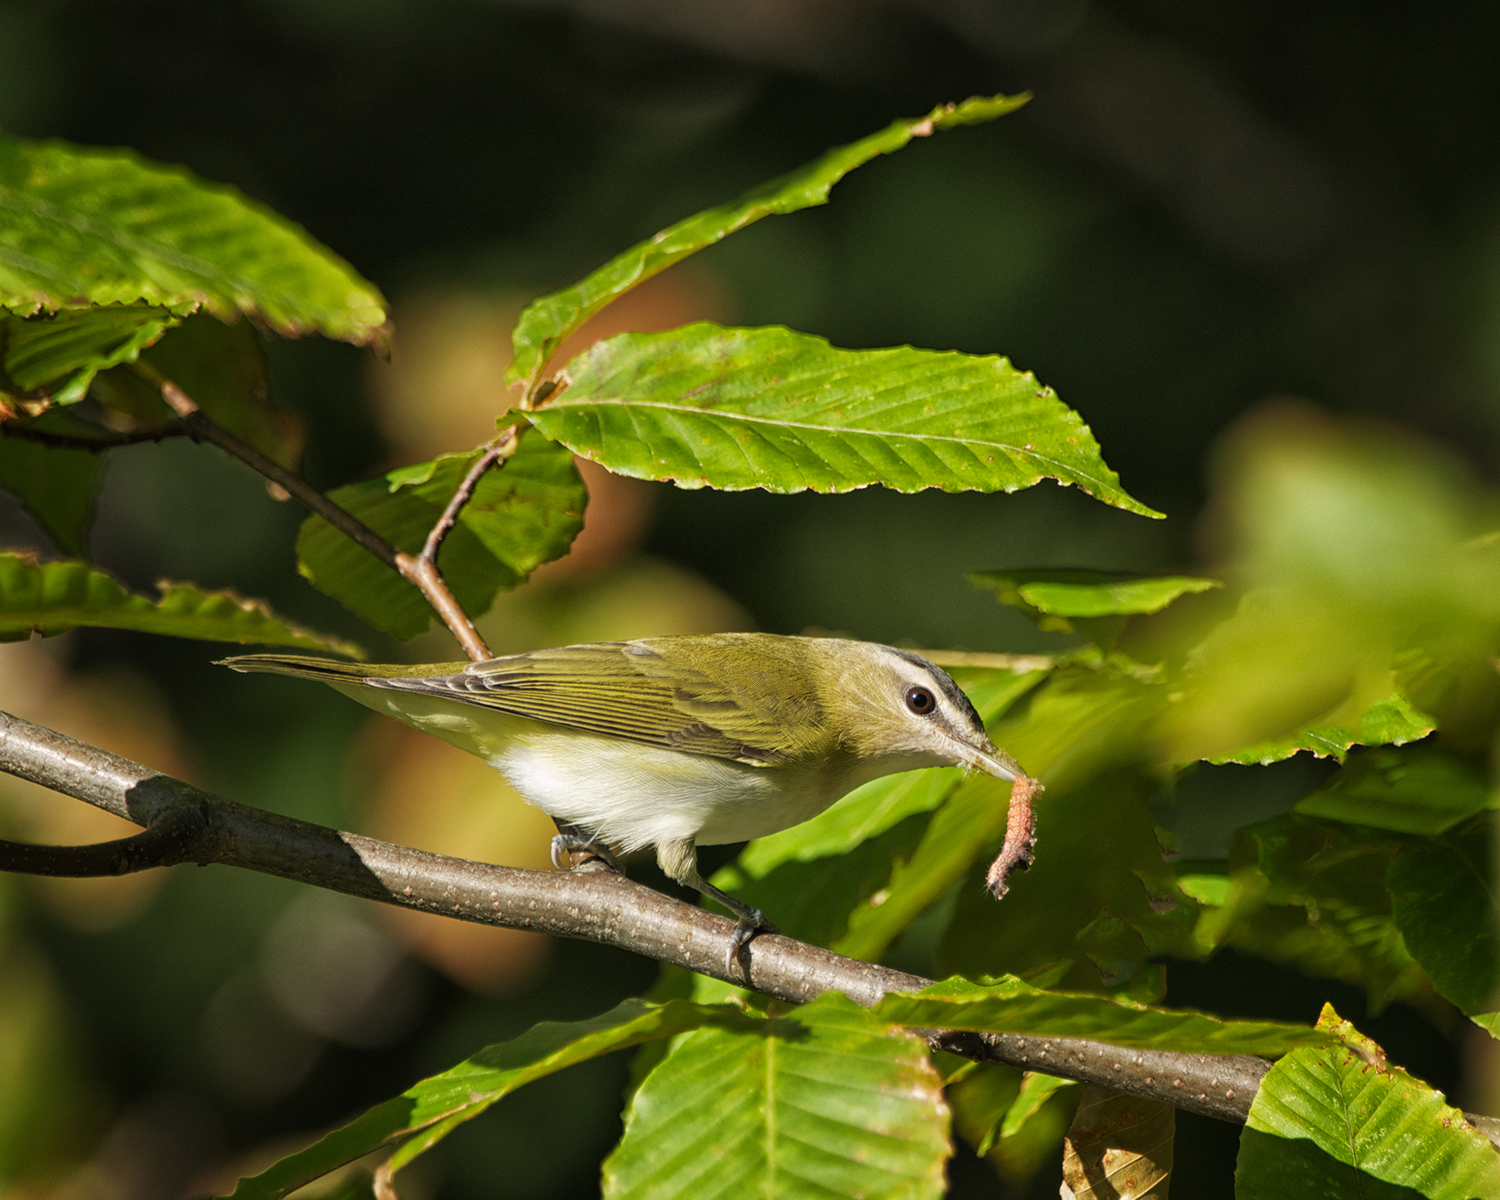 Red-eyed Vireo - Vireo olivaceus 9/25/12